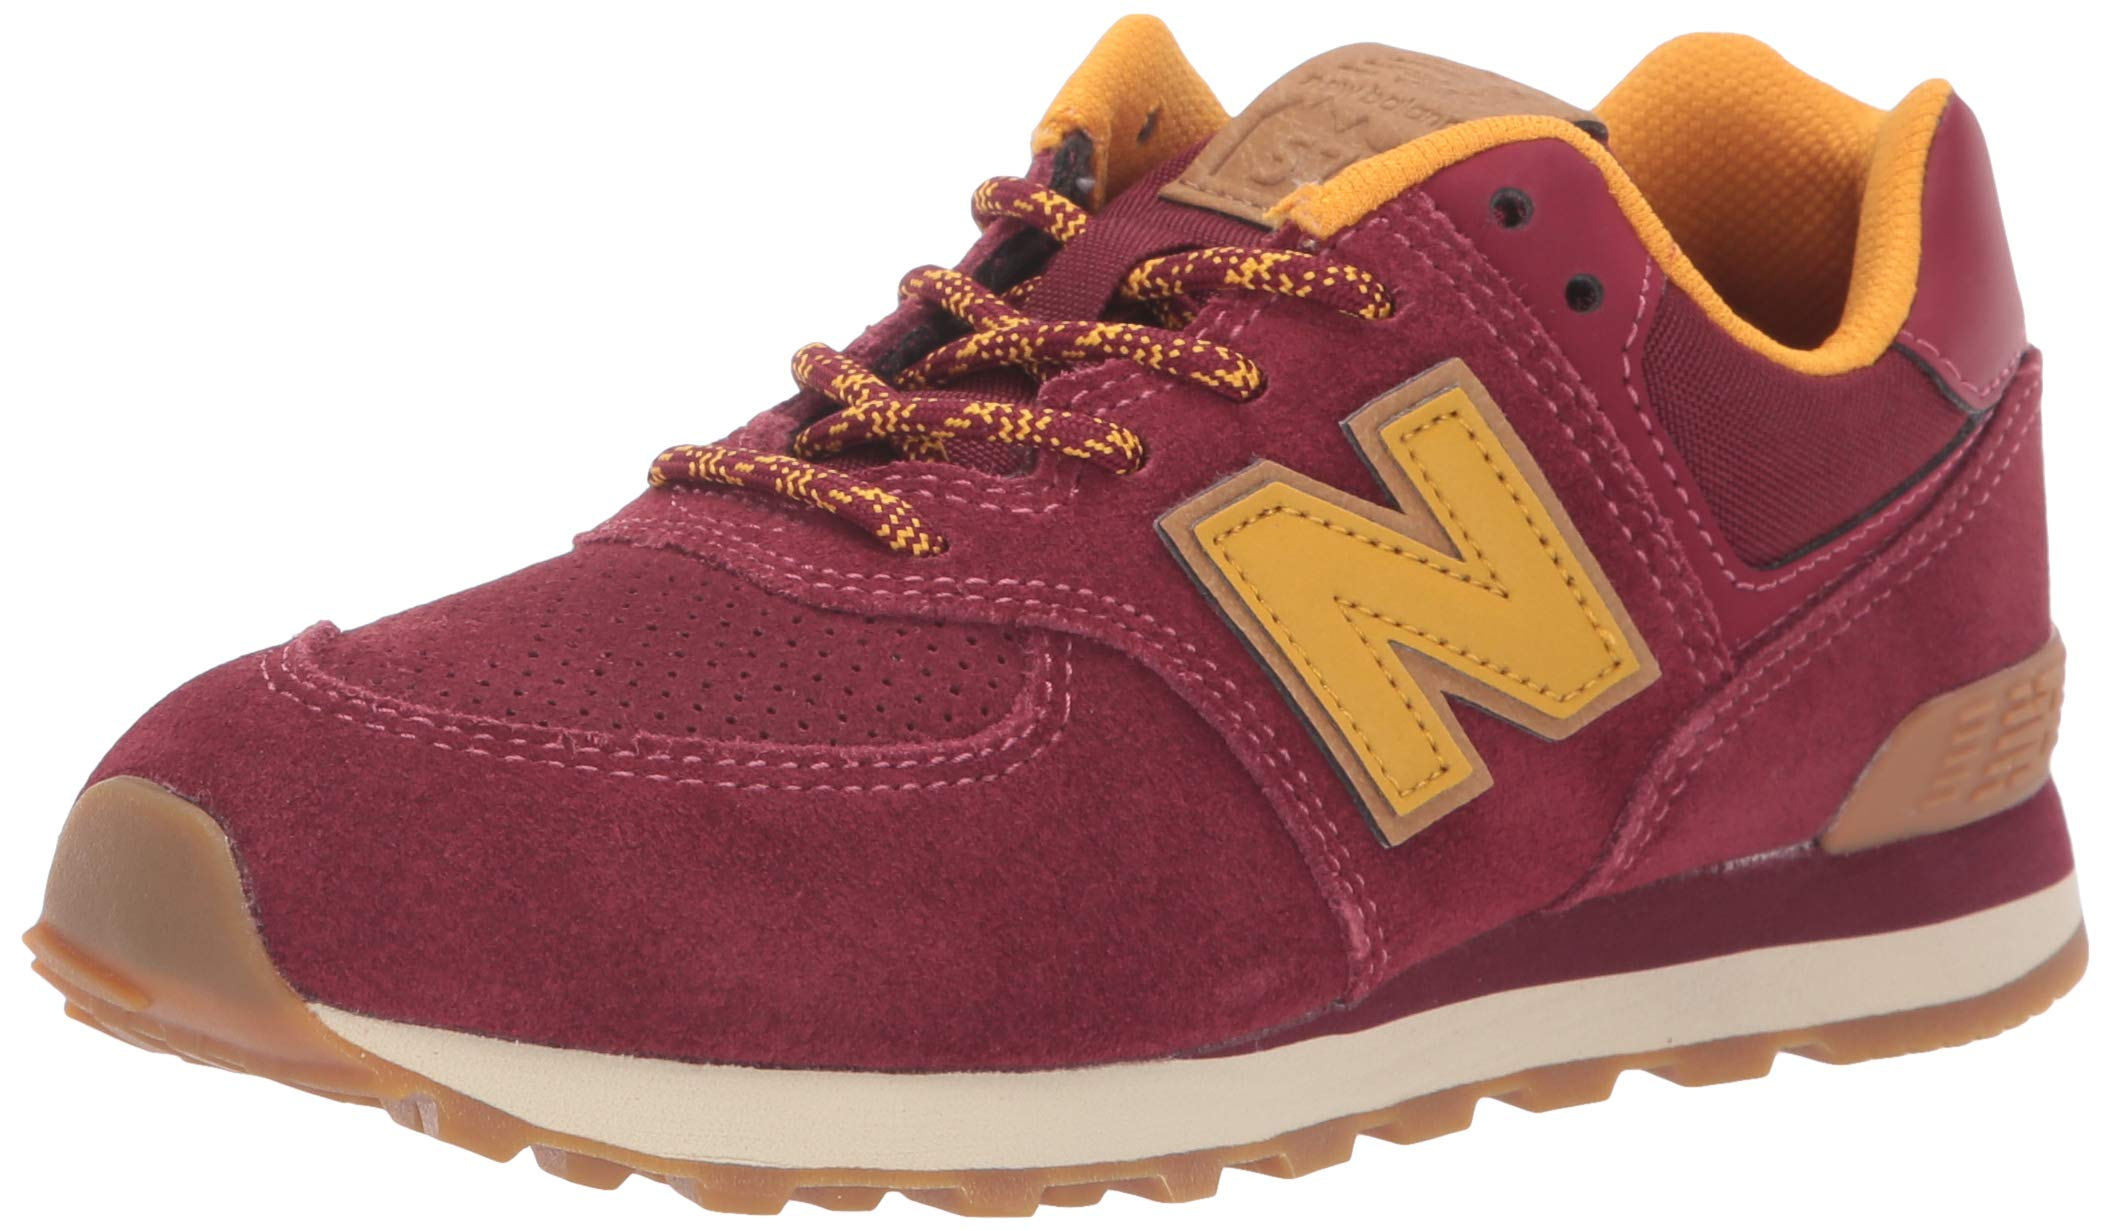 New Balance Boys' Iconic 574 Sneaker, Mercury Red/Gold Rush, 7 M US Toddler